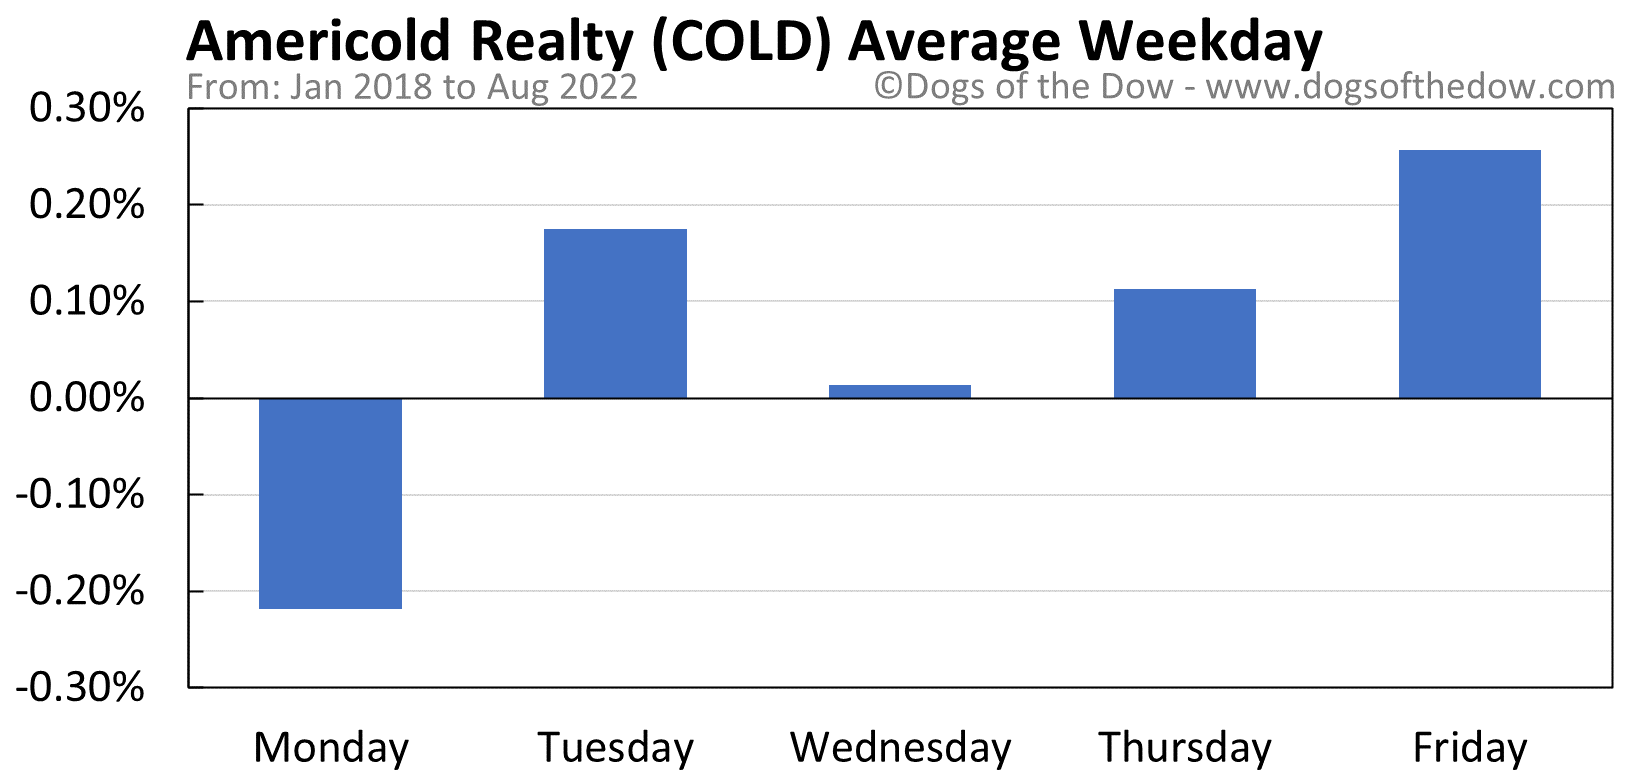 COLD average weekday chart